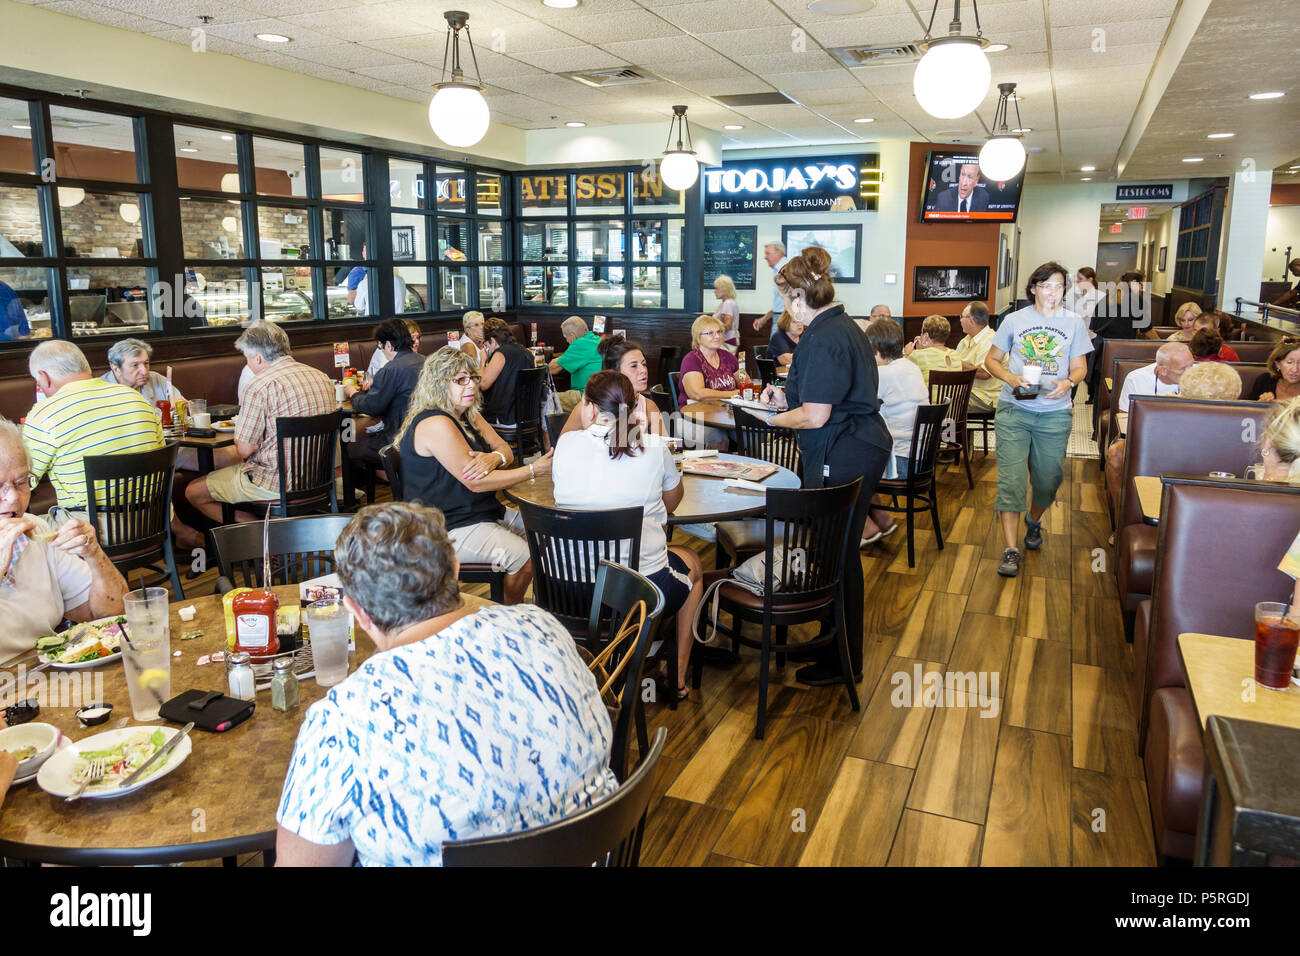 Crowded Restaurant Table In Stuart Florida Toojays Gourmet Deli Restaurant Interior Tables Patrons Customers Crowded Busy Man Woman Waitress Seniors Mature Adults